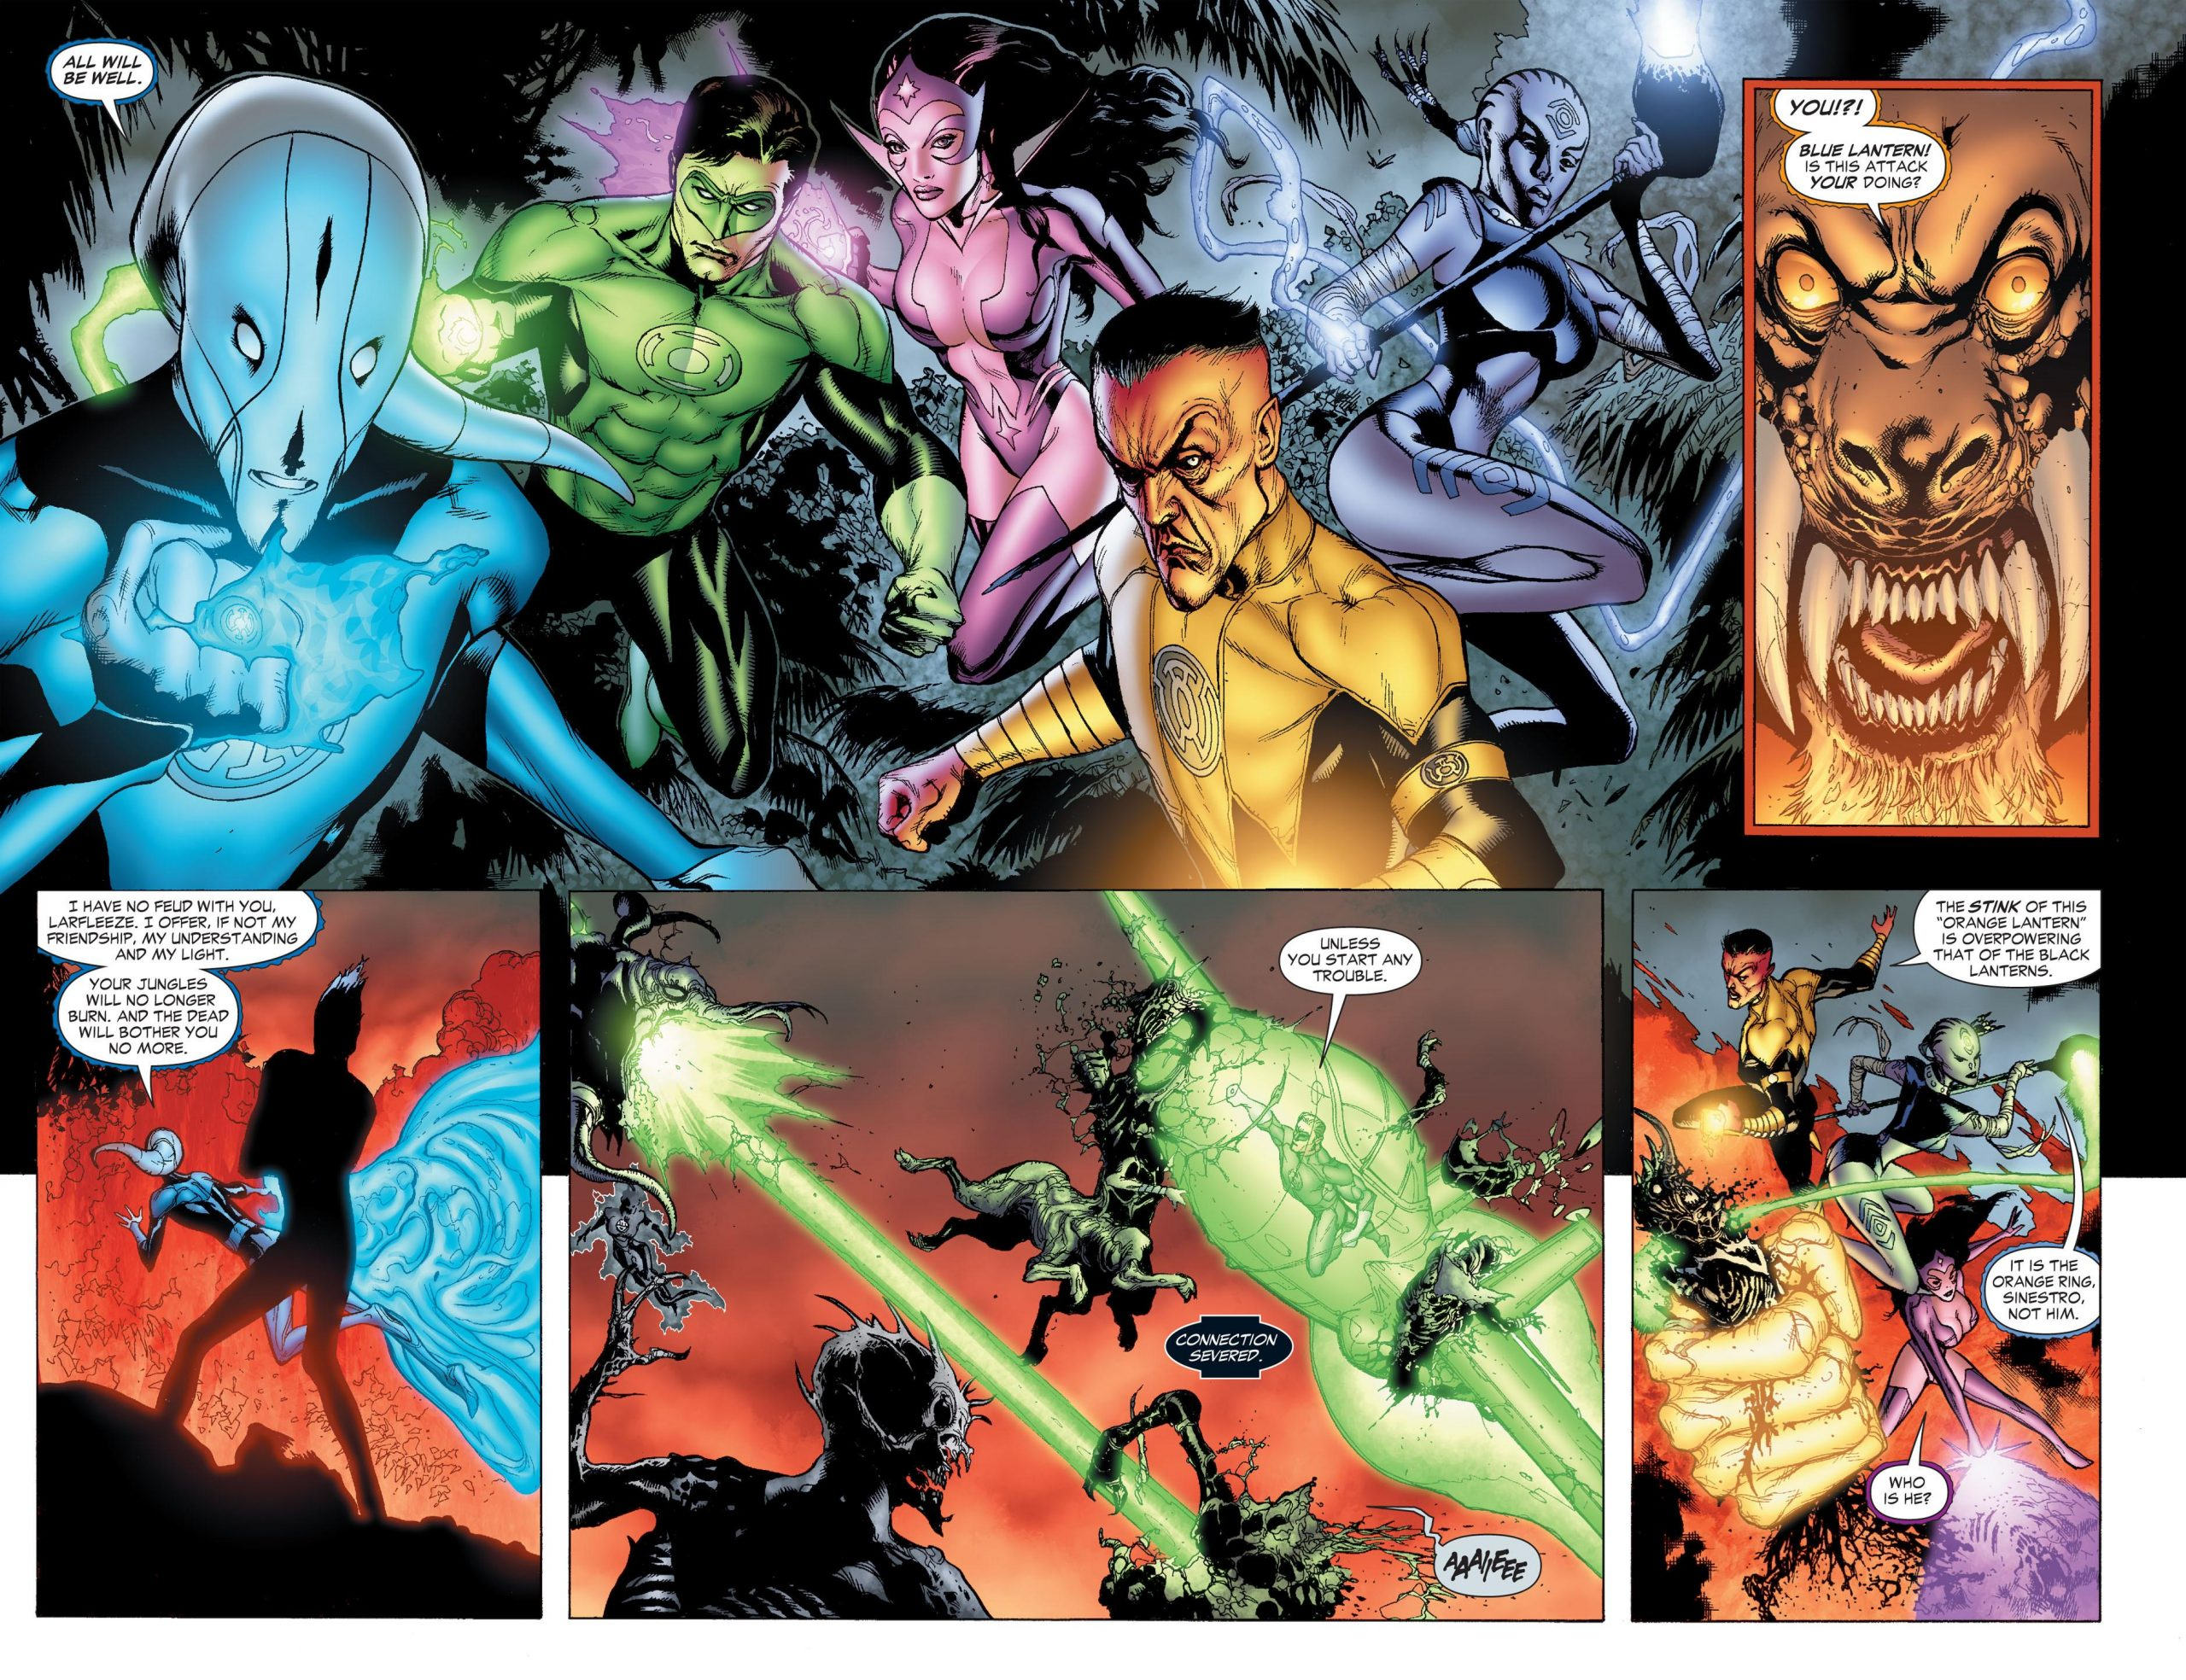 Green Lantern - Blackest Night review